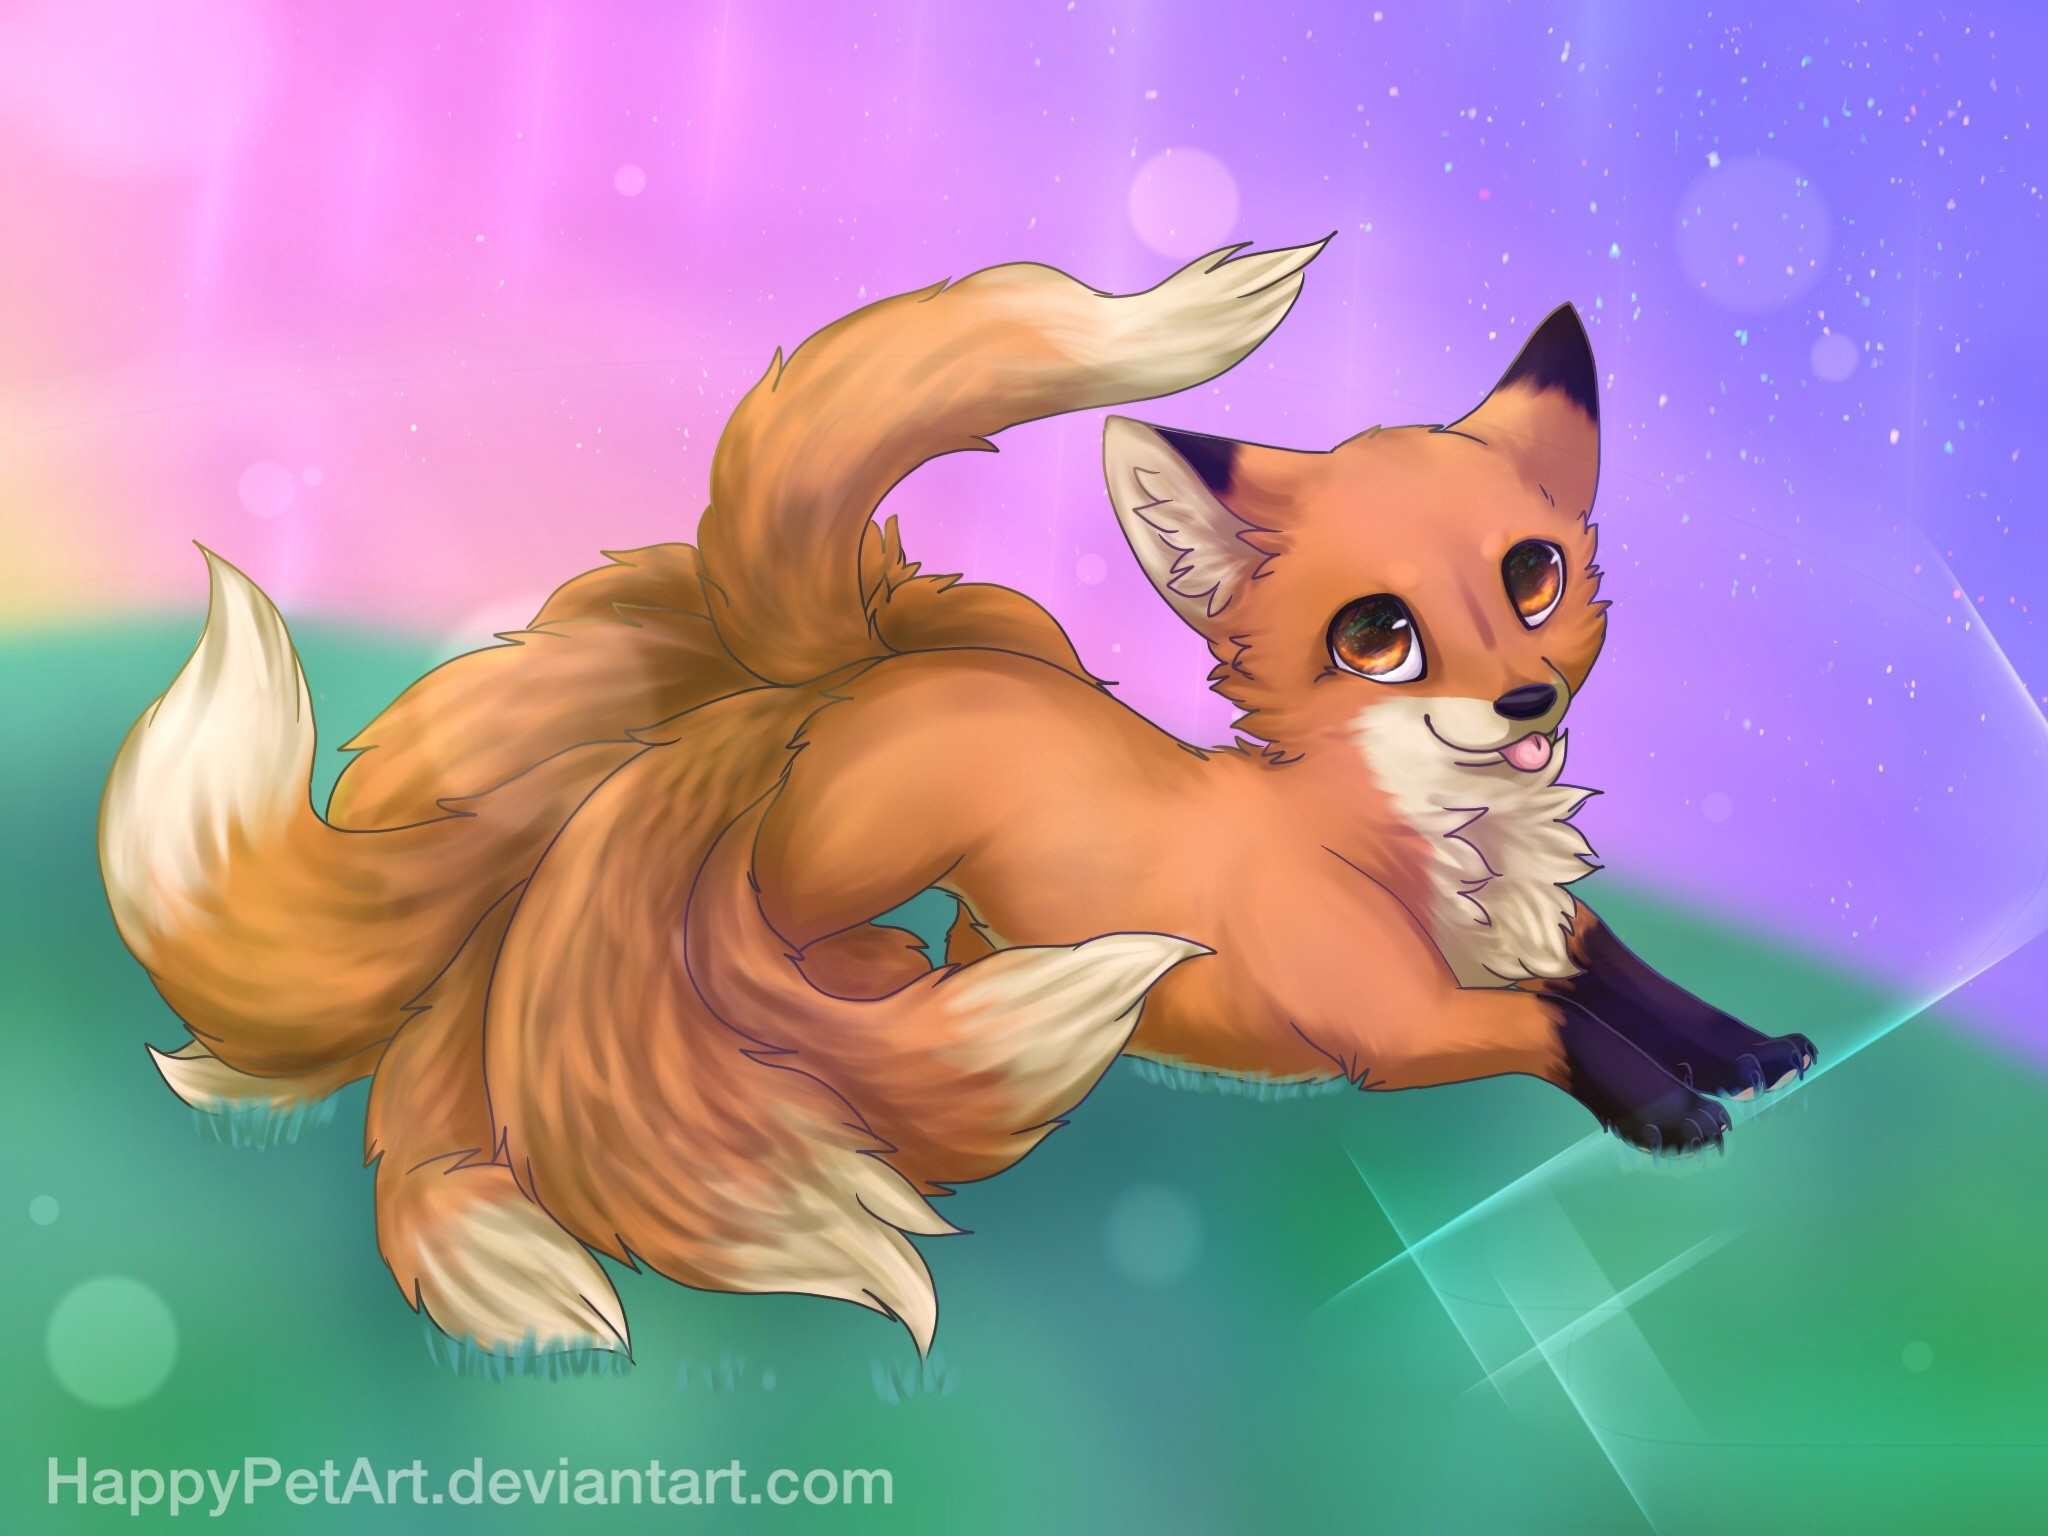 2048x1536 ... Nine-tailed fox by BingTatsu